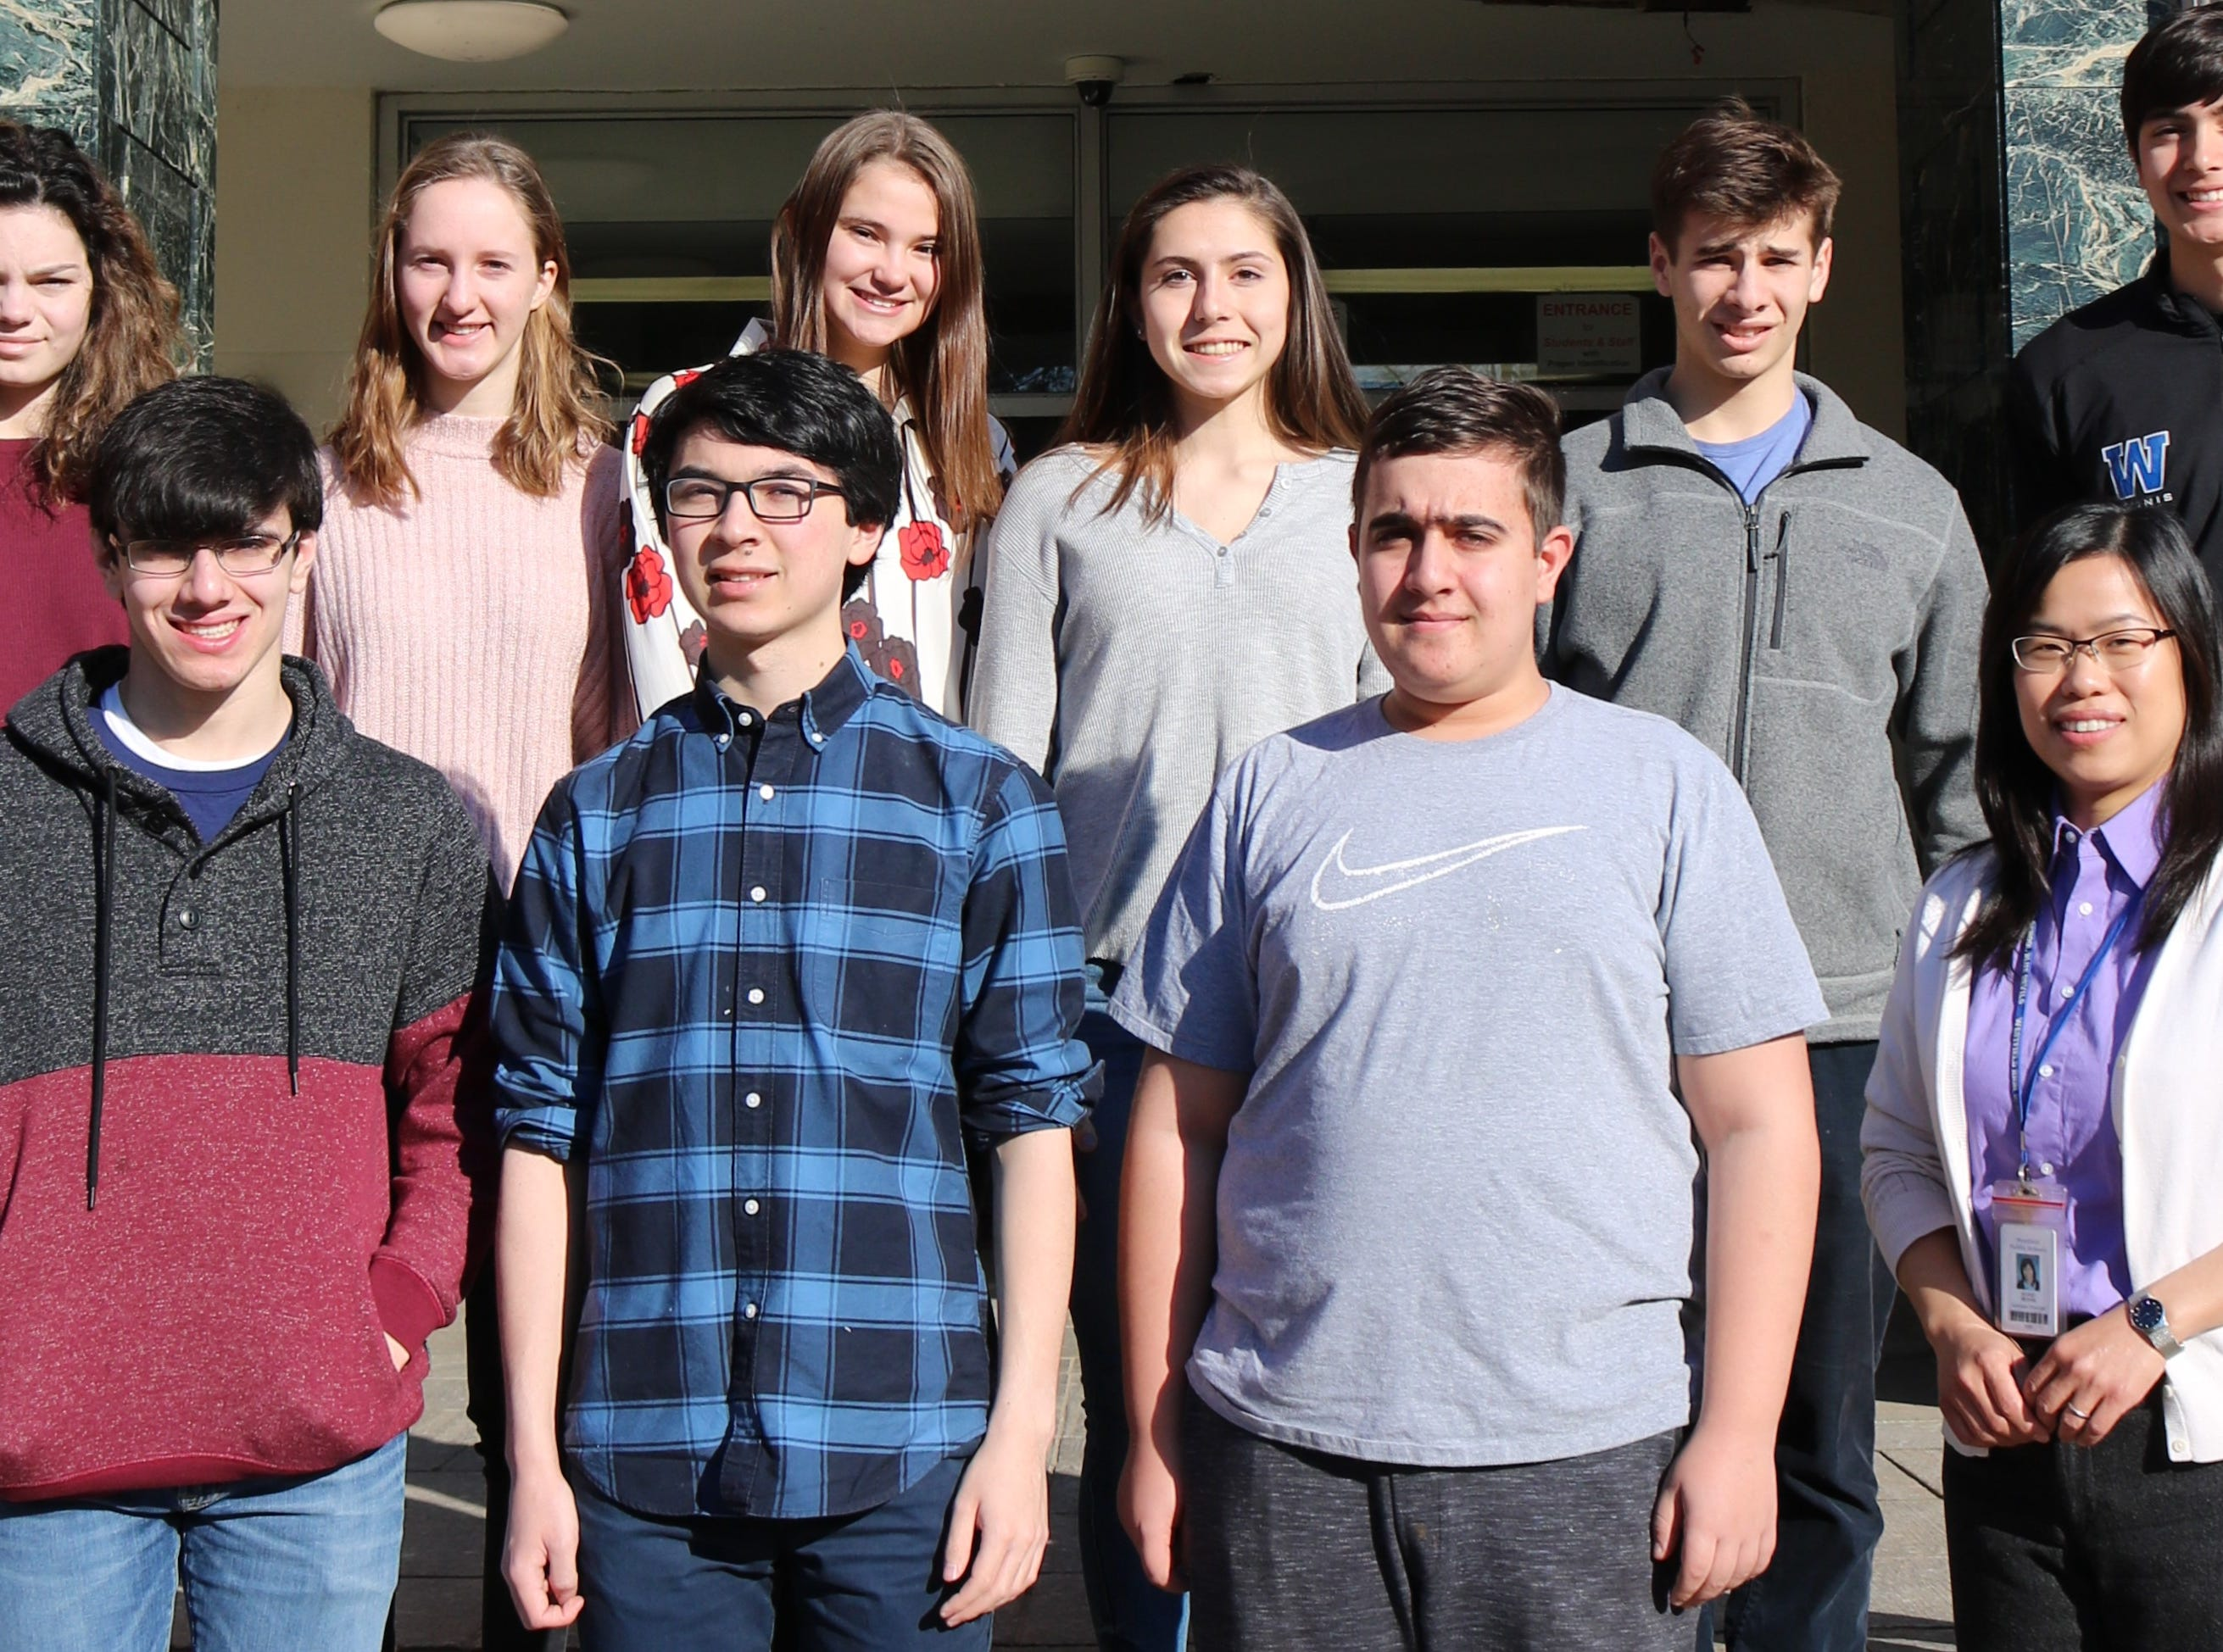 Nine Westfield High School juniors earned perfect scores on sections of the February 2019 ACT, bringing to 13 the number of WHS students scoring a perfect 36 on portions of the February ACT. Previously announced were Henry Meiselman (Science & STEM), Abbey Zidel (English), Brianna Weber (Reading), and Jacob Rock (English & Reading).    Pictured here are: (front row, left to right) Mark Falletta (Science & STEM), Stephen Park (Science), Alexander Joseph (Math, Science & STEM) and WHS assistant principal Mabel Huynh. (back row, left to right) Abigail Sternberg (Reading), Celeste Scott (Reading), Greta McLaughlin (Reading), Sandrine Perez (Science), Jonathan Sherman (Science & Reading), and Brad Hornbeck (Math).